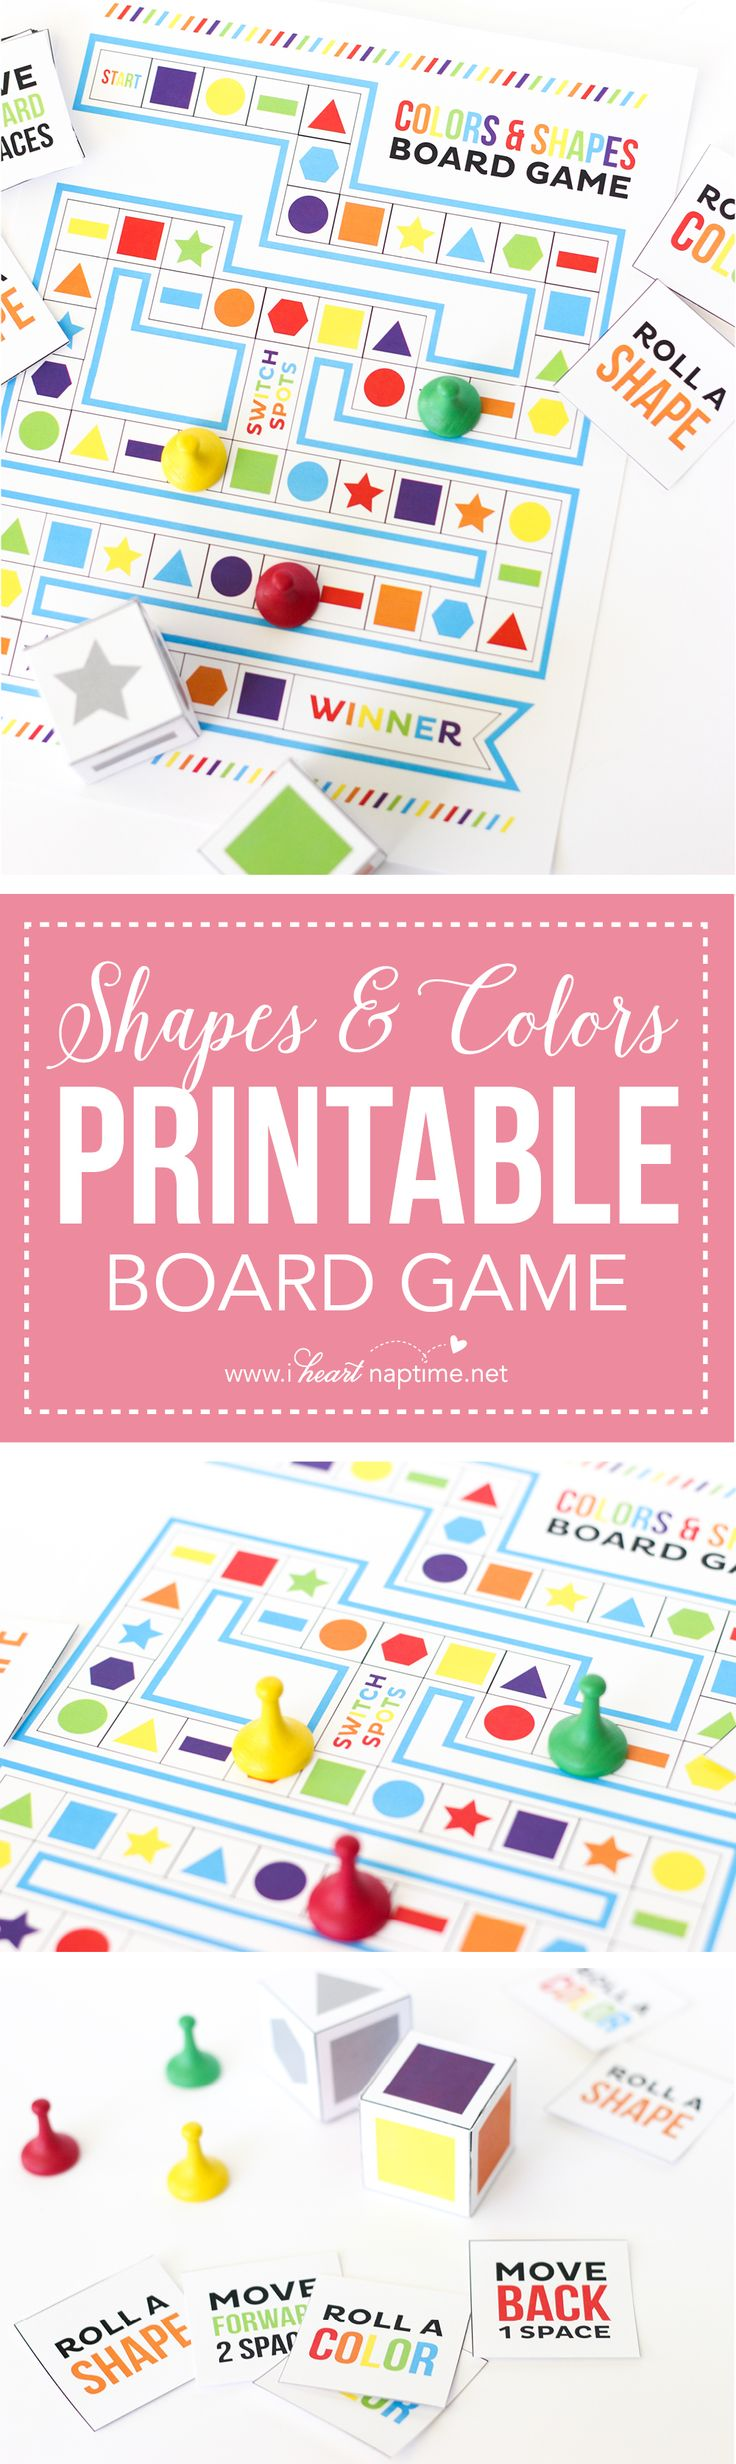 Game for colors - Shapes And Colors Printable Board Game